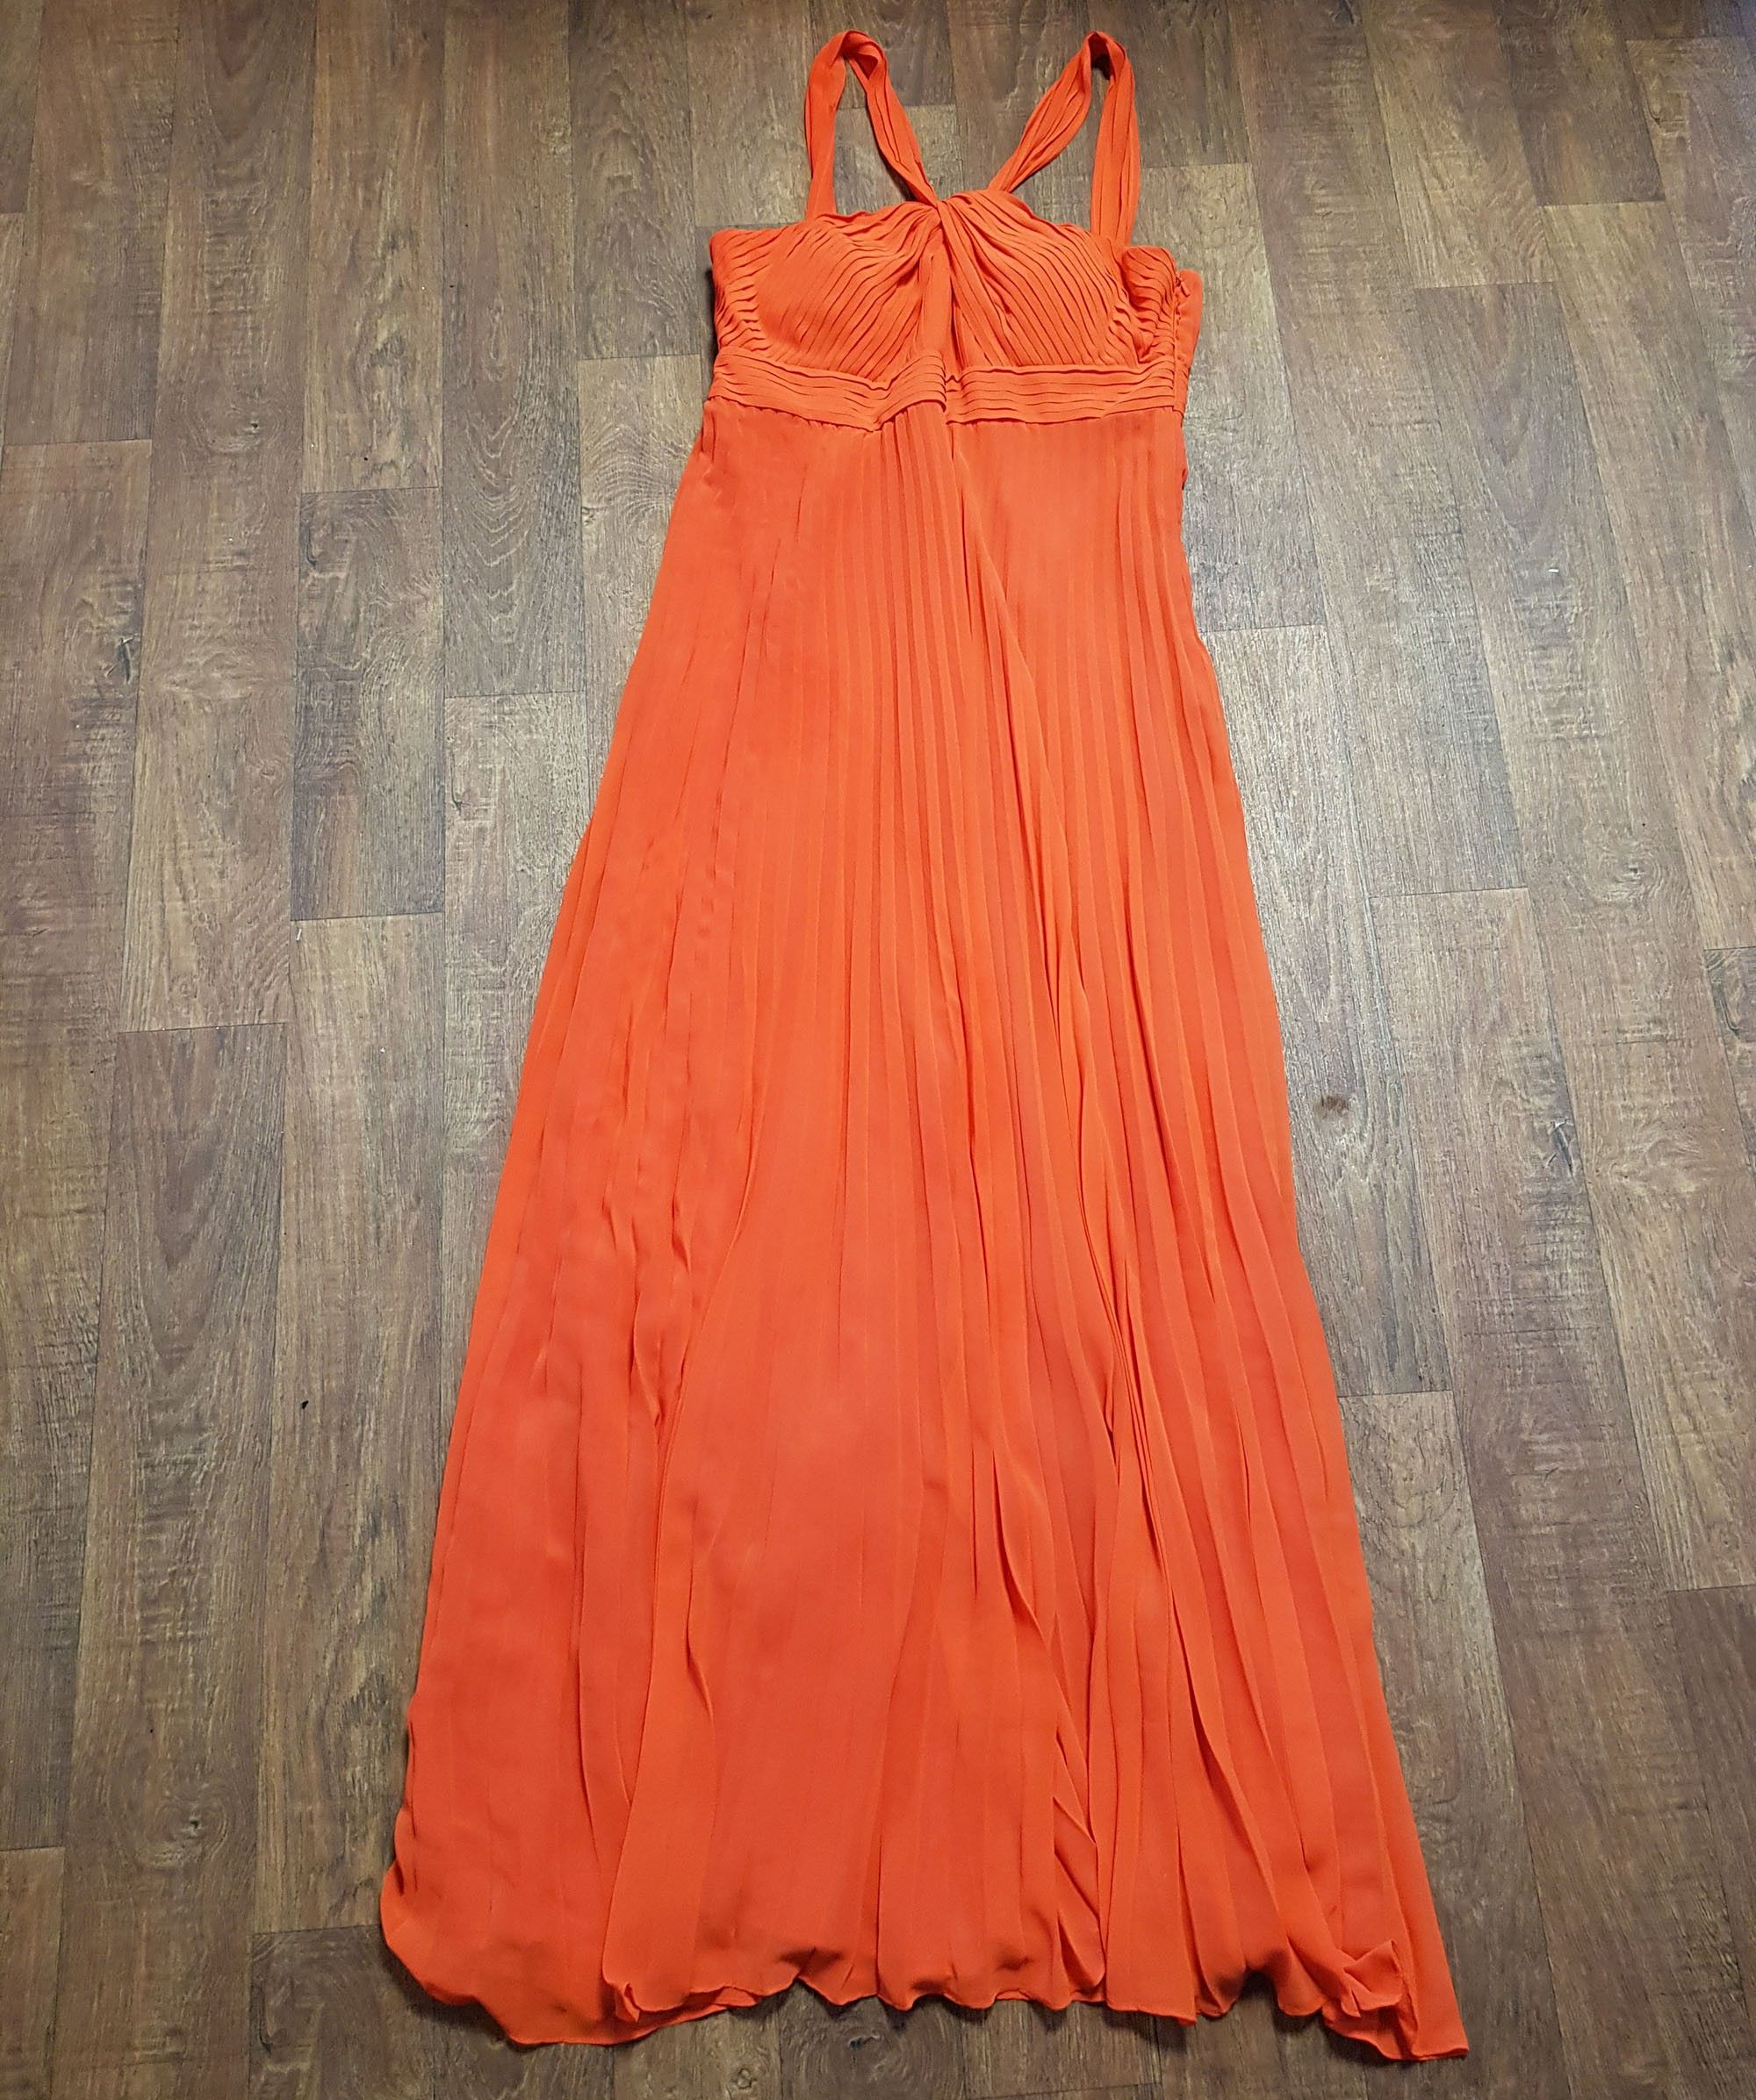 Orange Pleated Chiffon Evening Maxi Dress UK Size 14